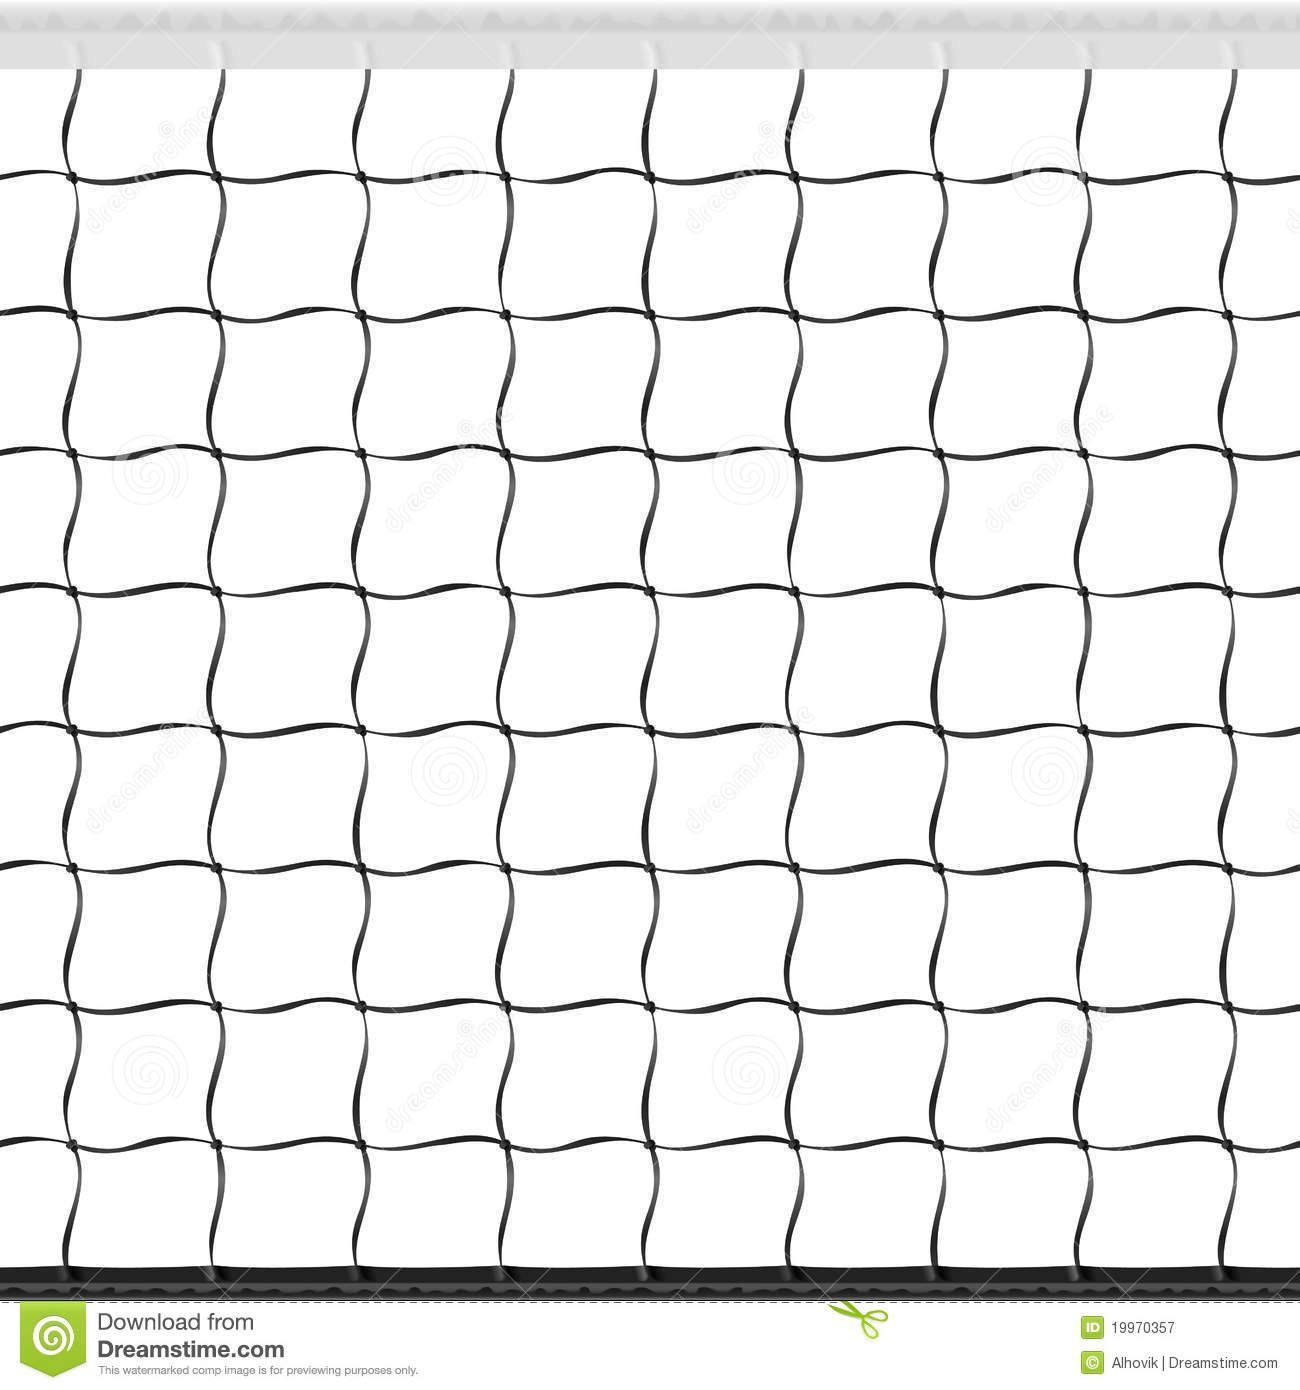 Volleyball Net Pattern Google Search Volleyball Net Volleyball Clipart Volleyball